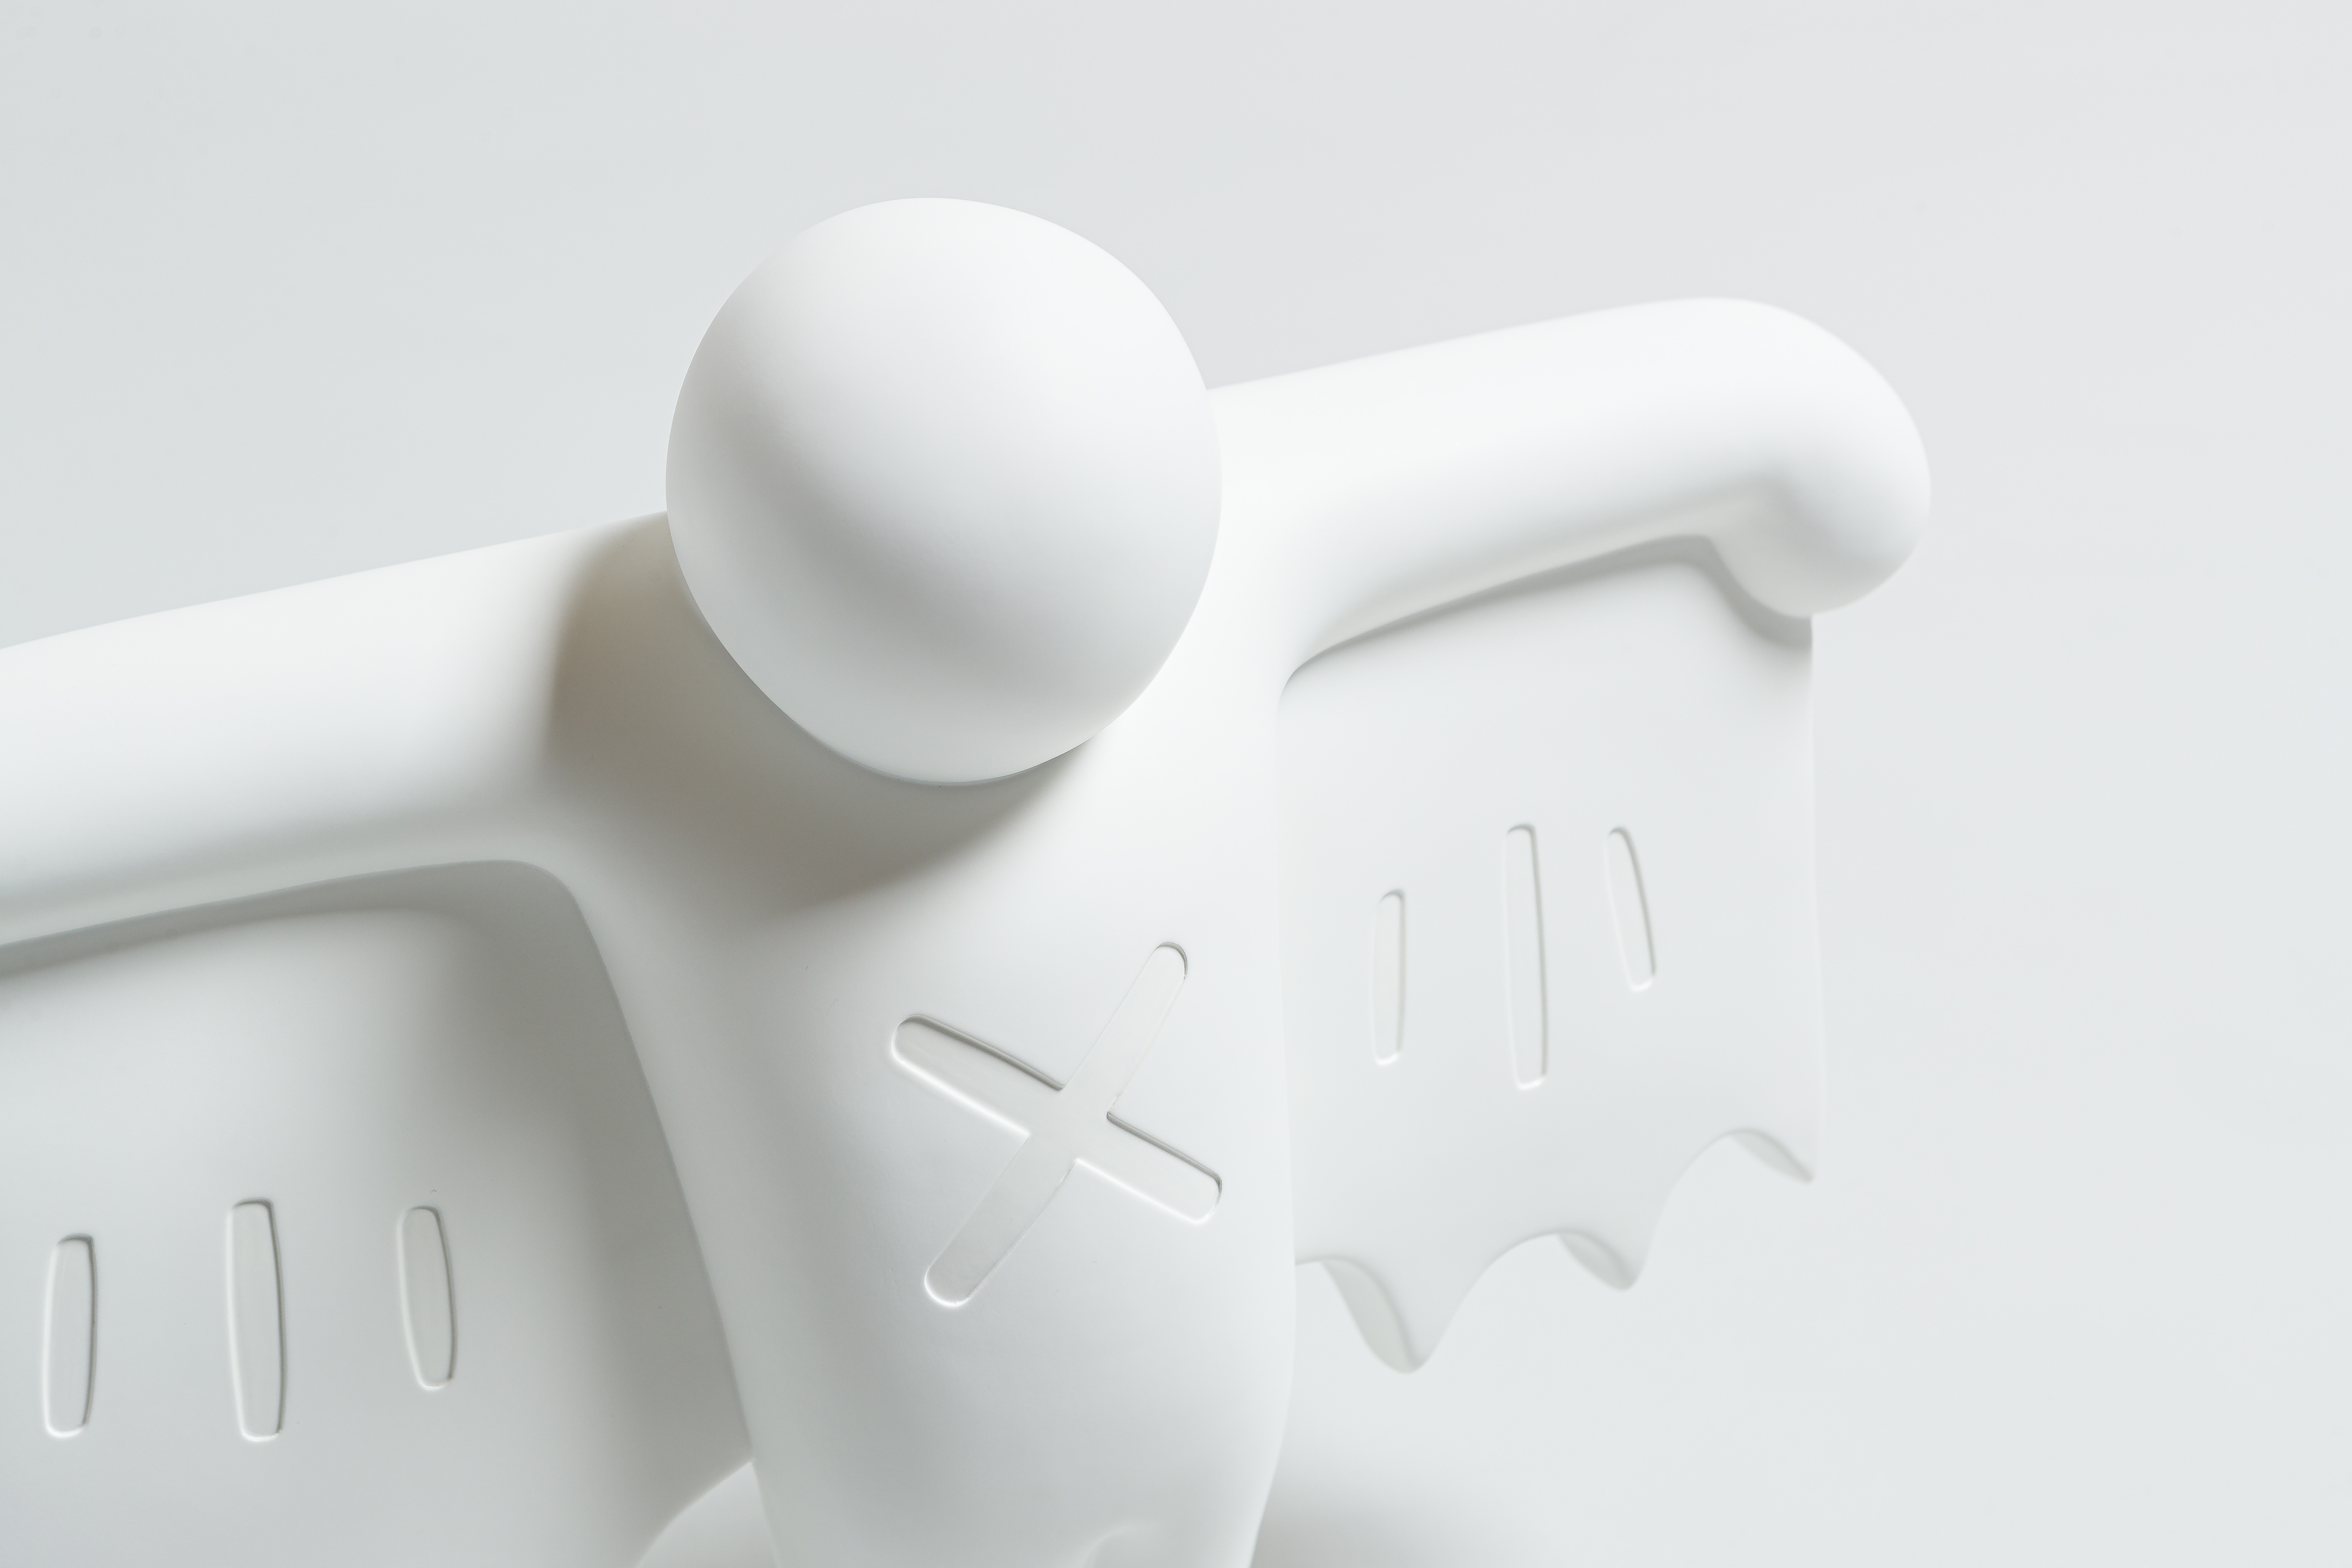 Up There Store - Medicom Toy - H.R. Giger Bearbrick & Keith Haring Statues